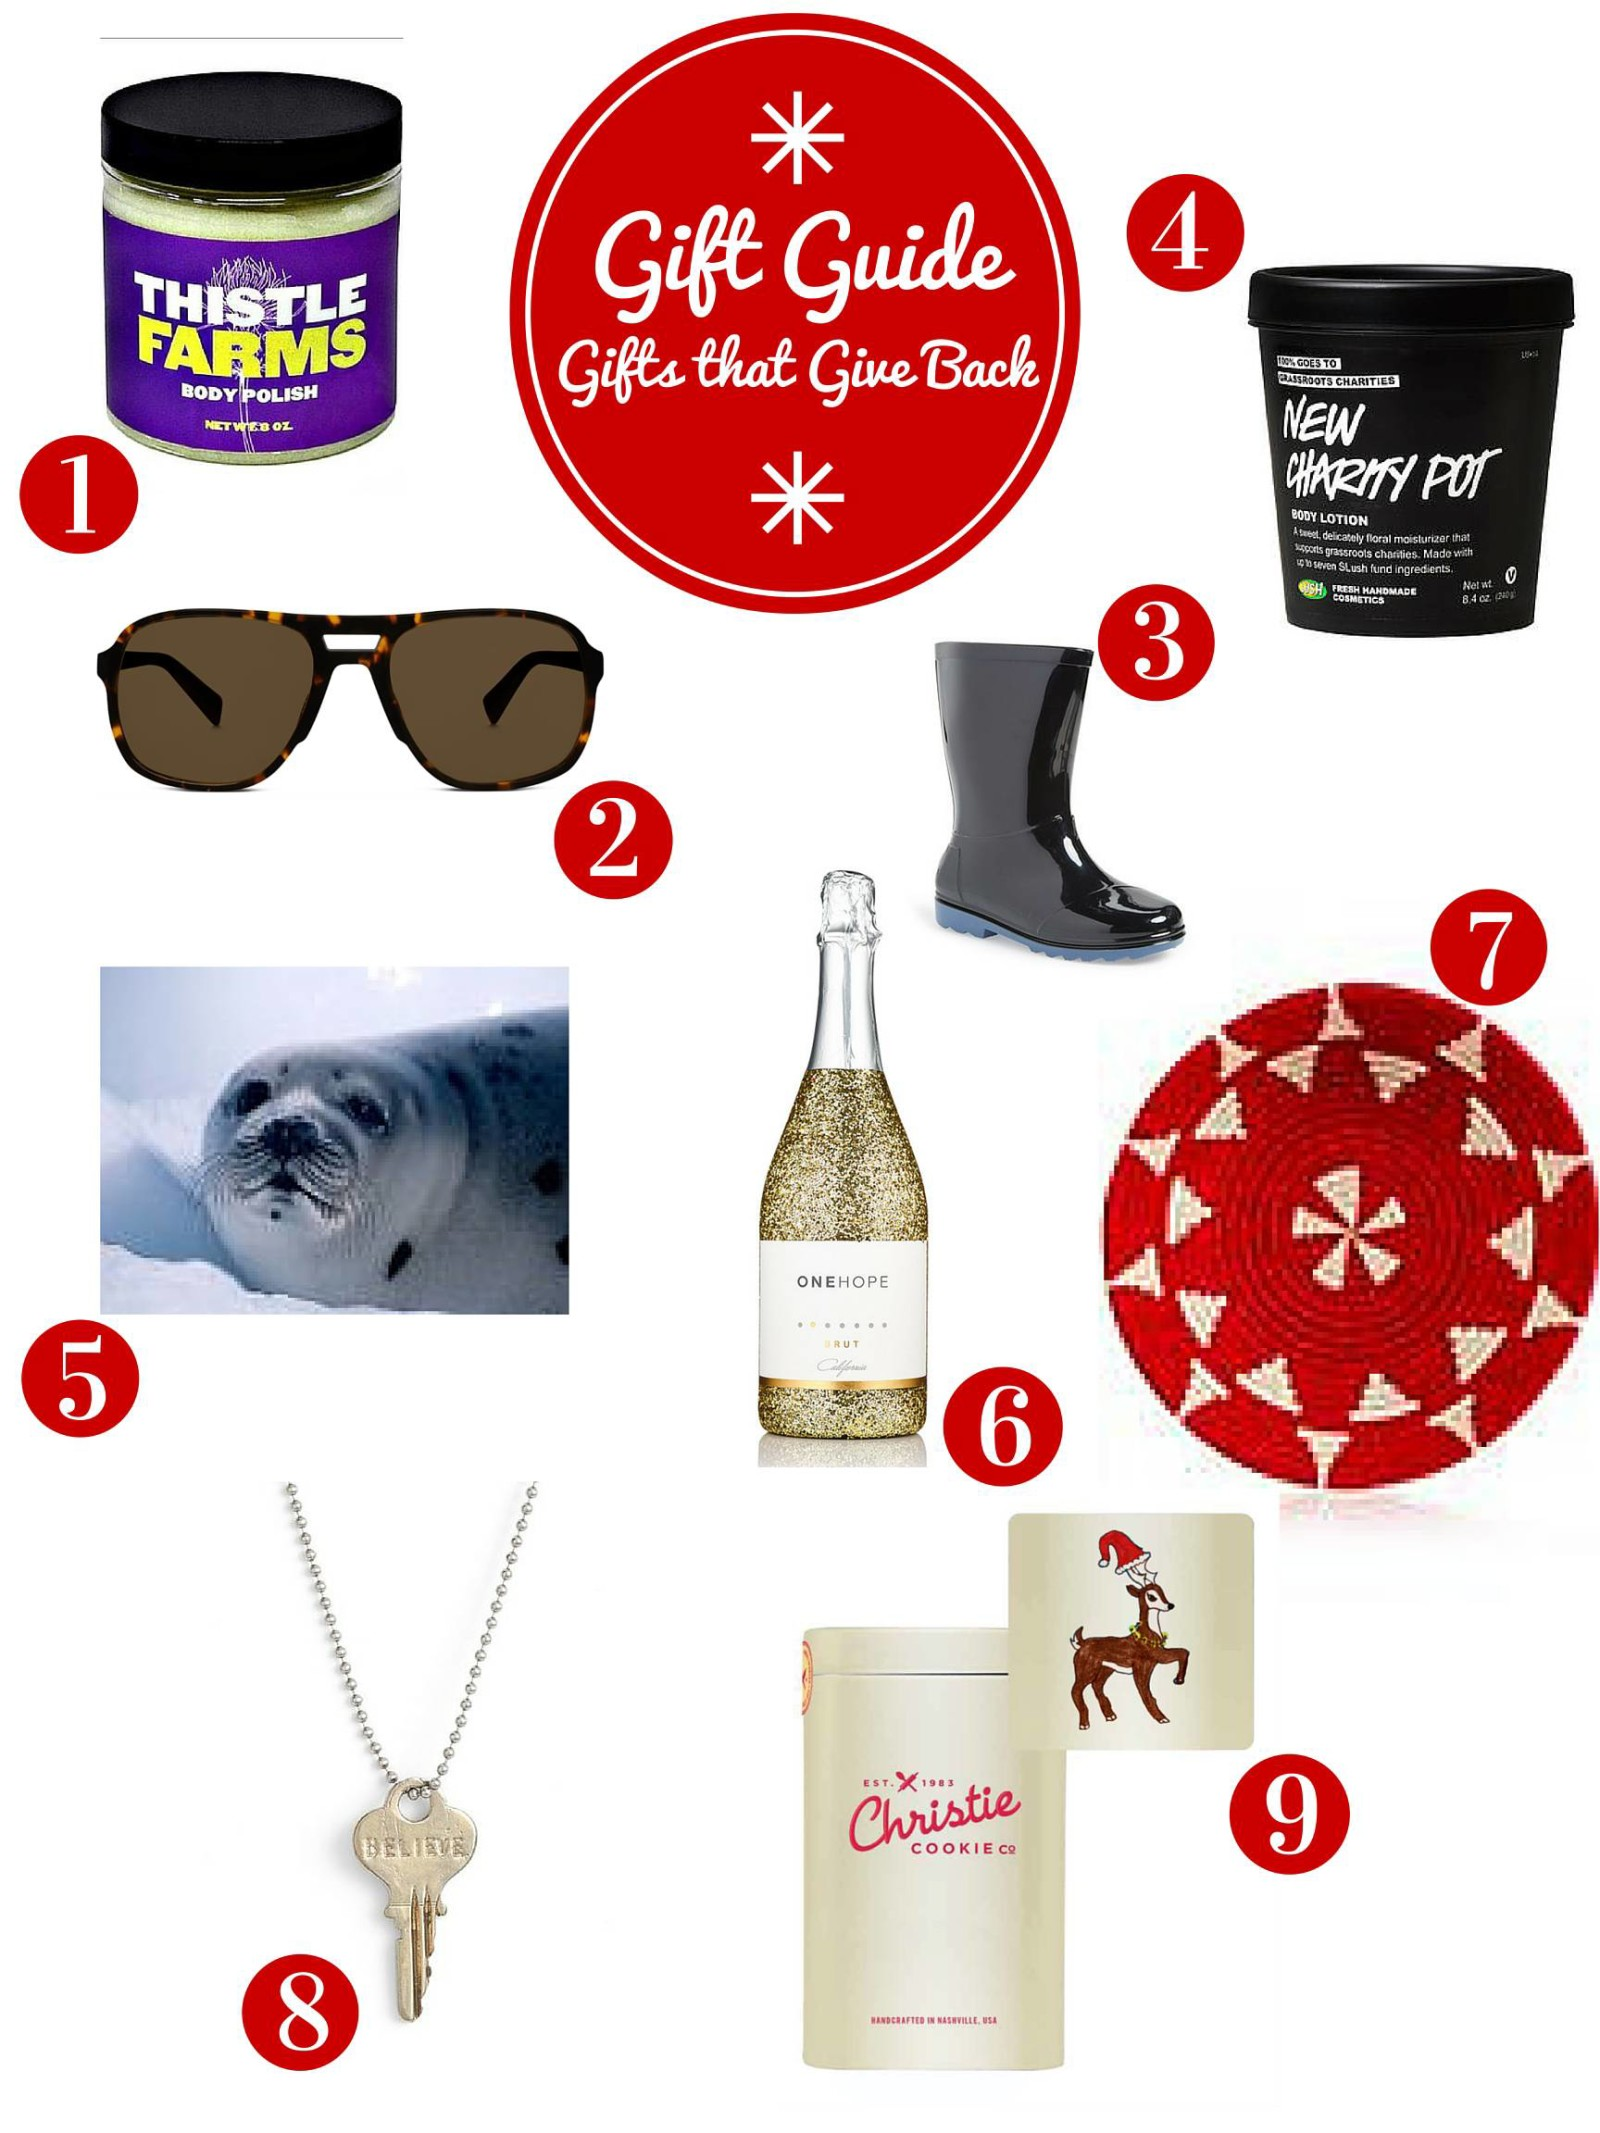 Gift Guide: Gifts that Give Back